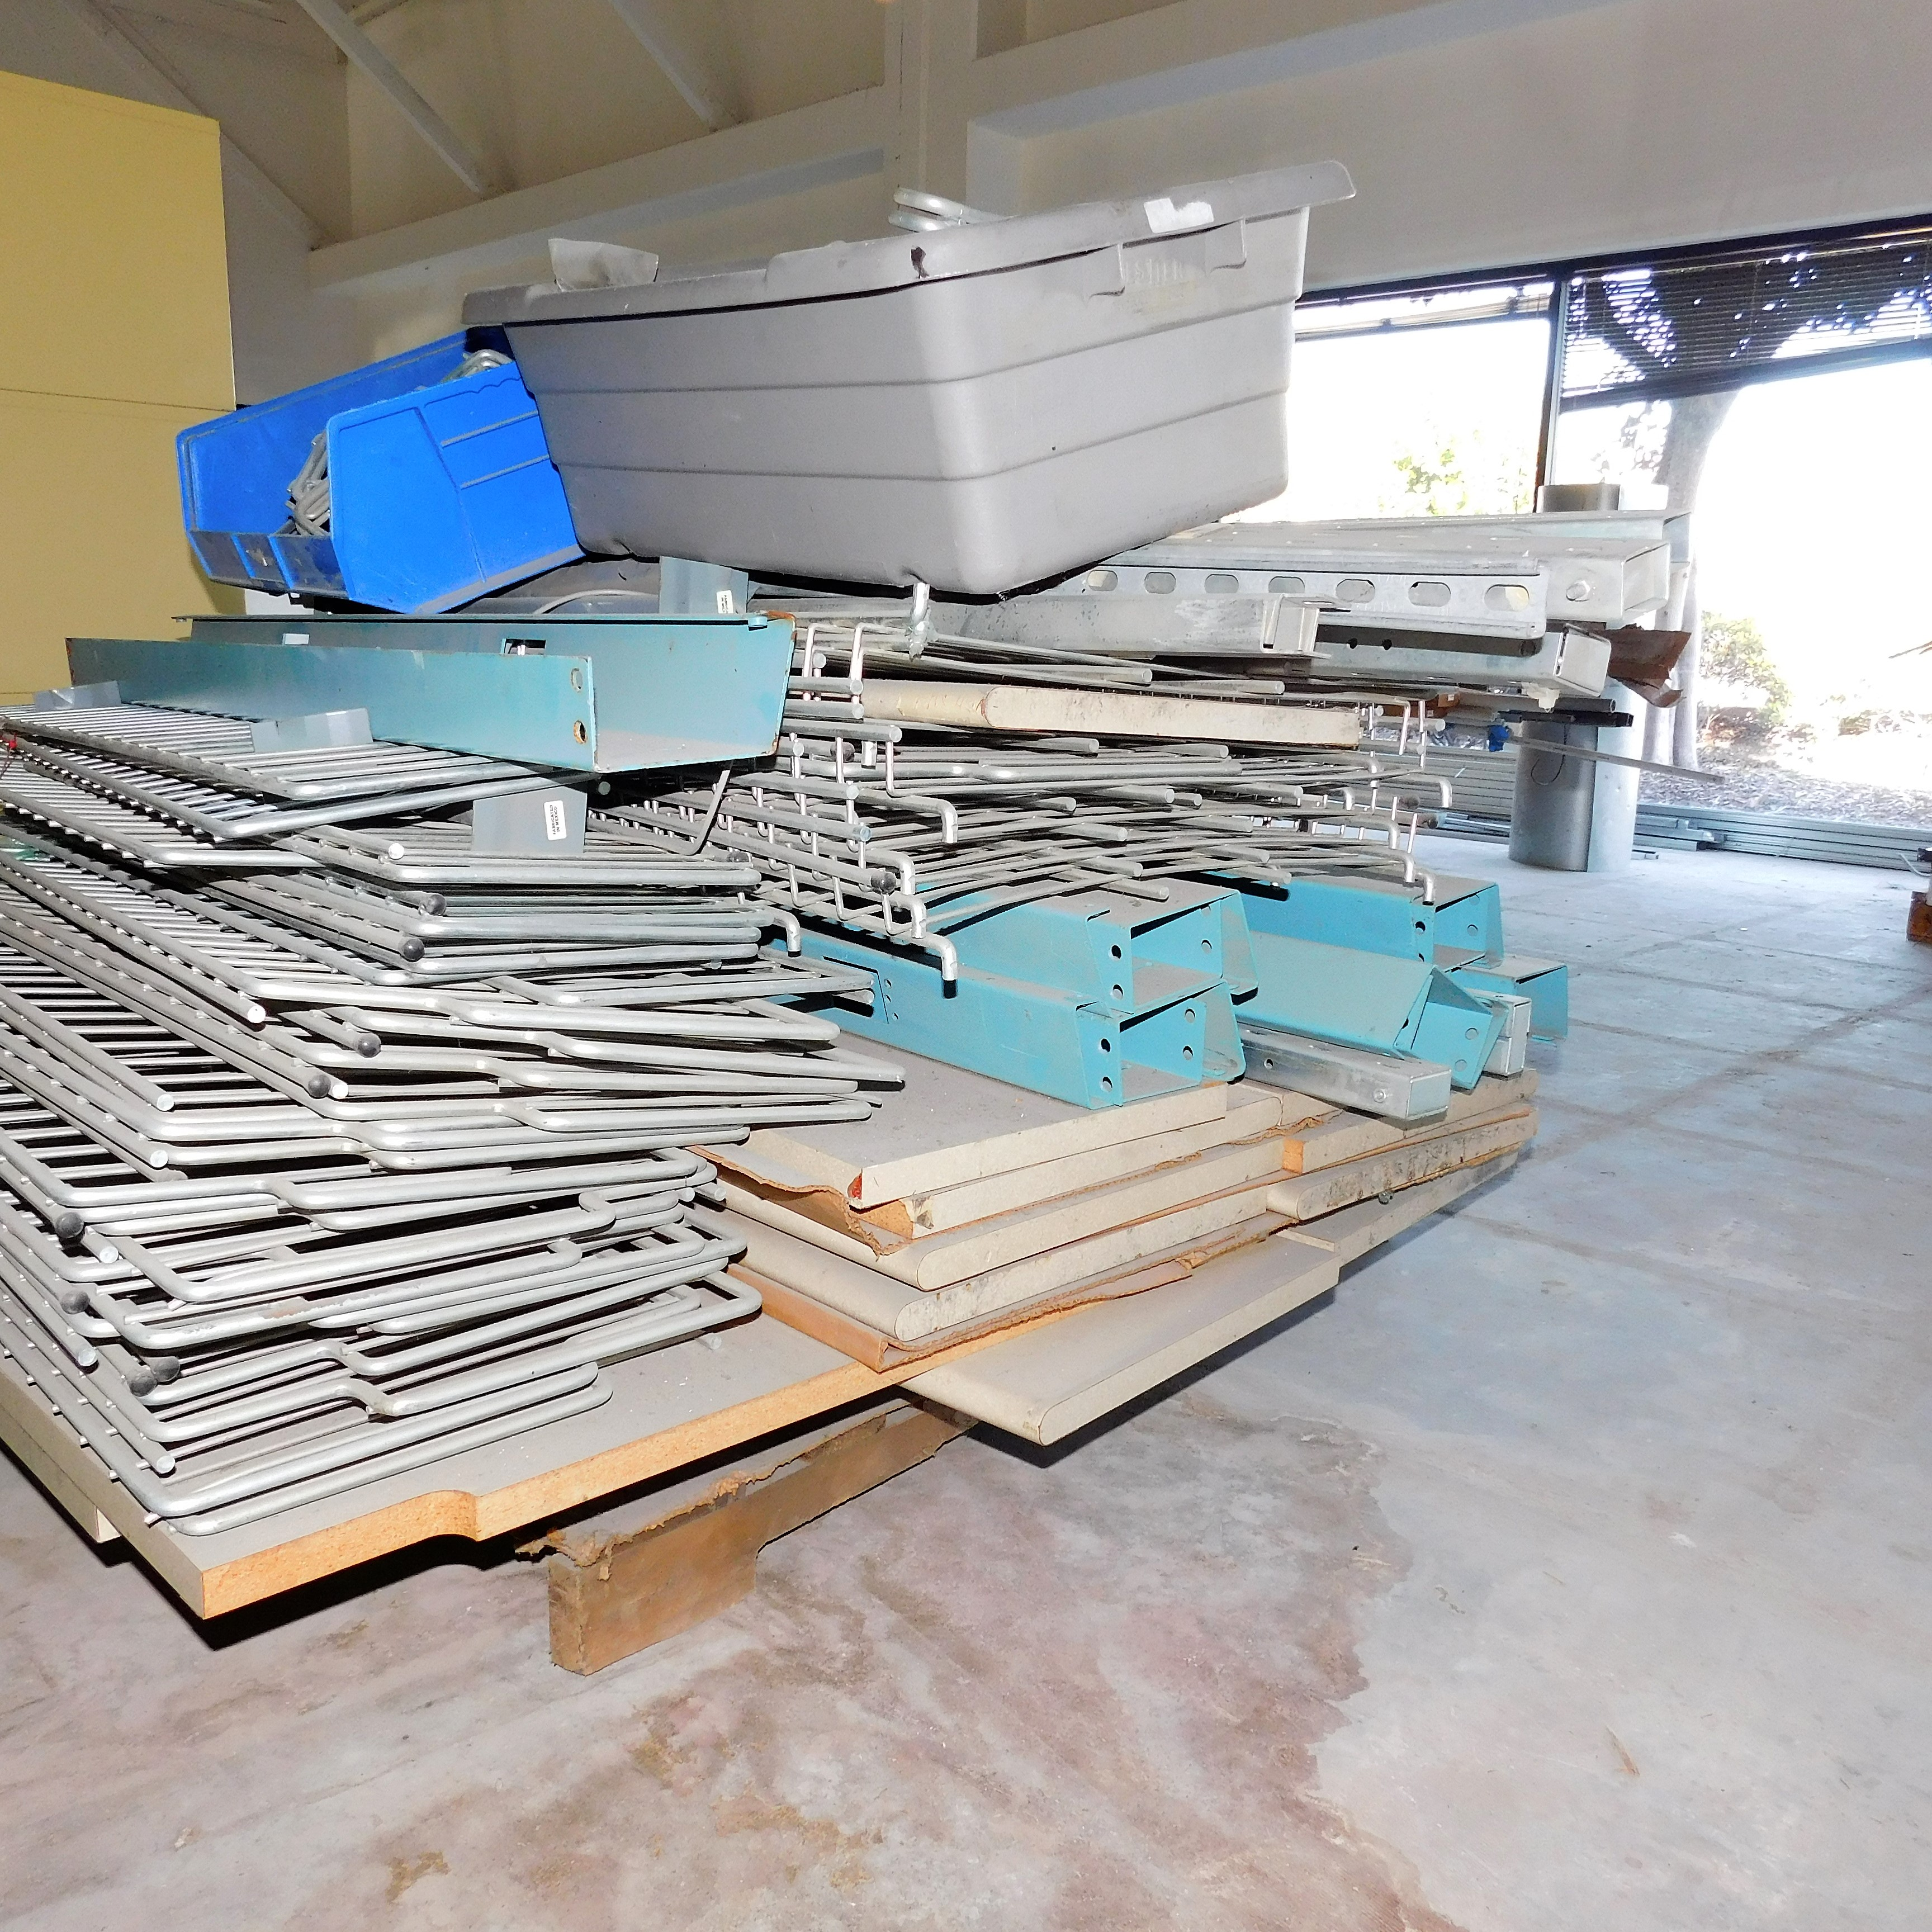 Lot 10 - LOT - PALLET OF DISASSEMBLED WORKBENCHES W/ SHELVING